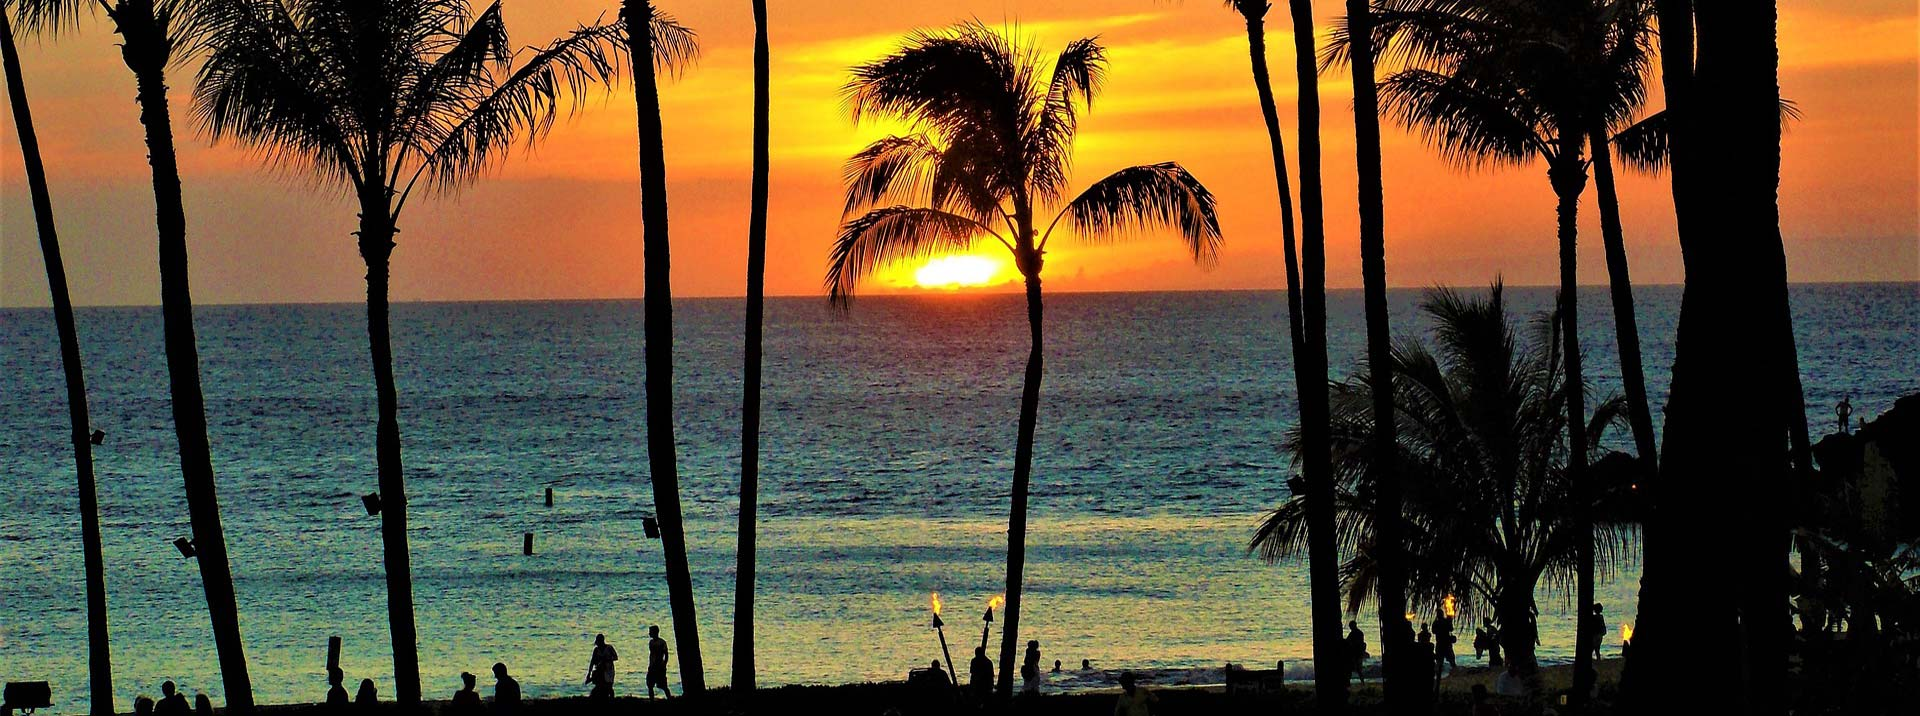 Discounted flight tickets from Sydney to Hawaii - IFlyFirstClass